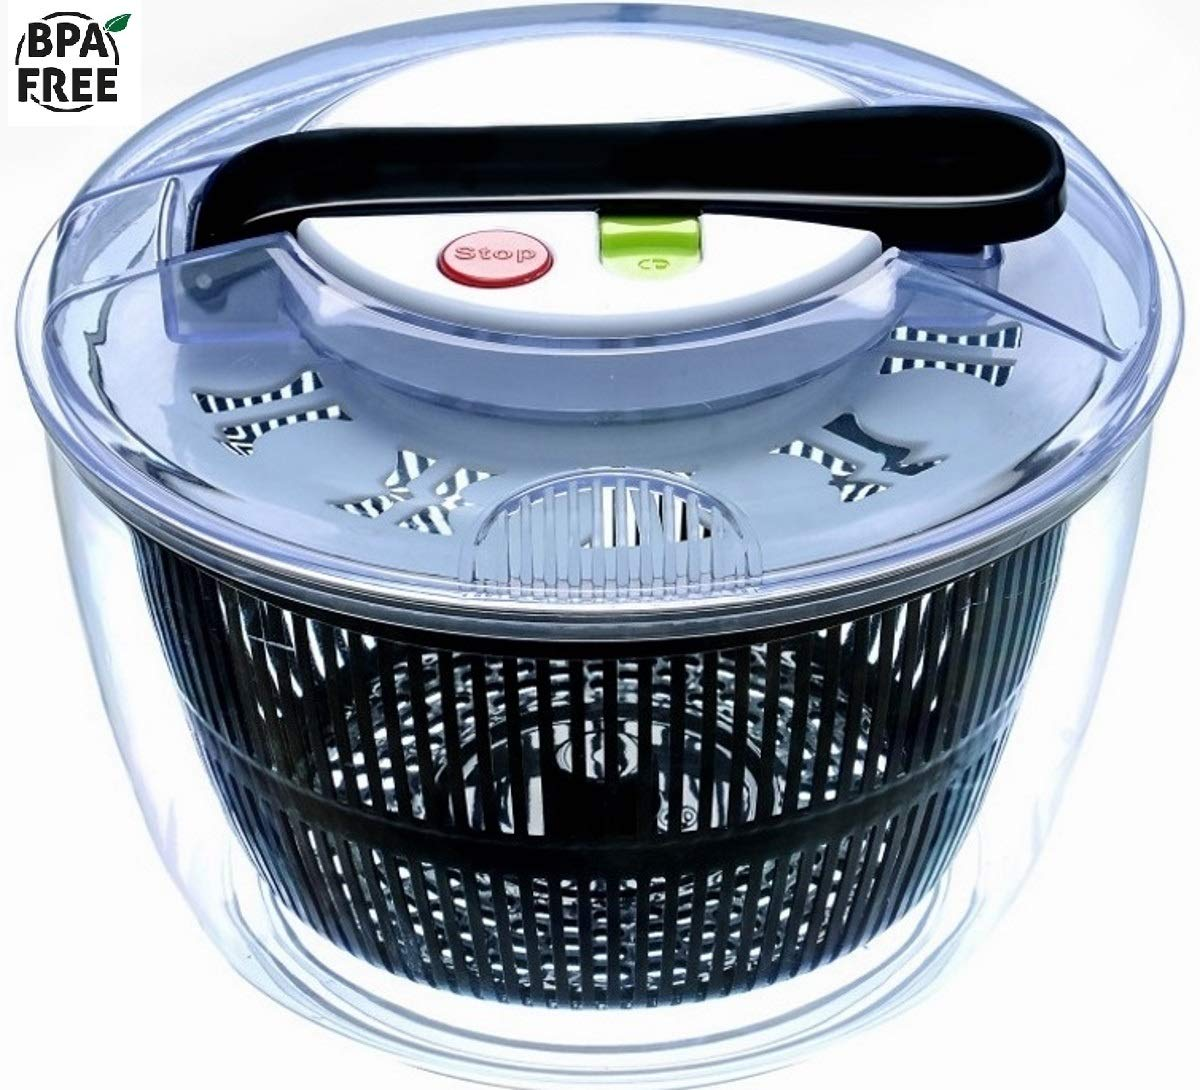 Xileny Salad Spinner Lettuce washer  and Dryer - 5L Capacity & BPA Free Non-Skid Base and Easy Break Button - Prepares Leafy Greens  Salad in an Instant - Innovative Design Black and white by Xileny